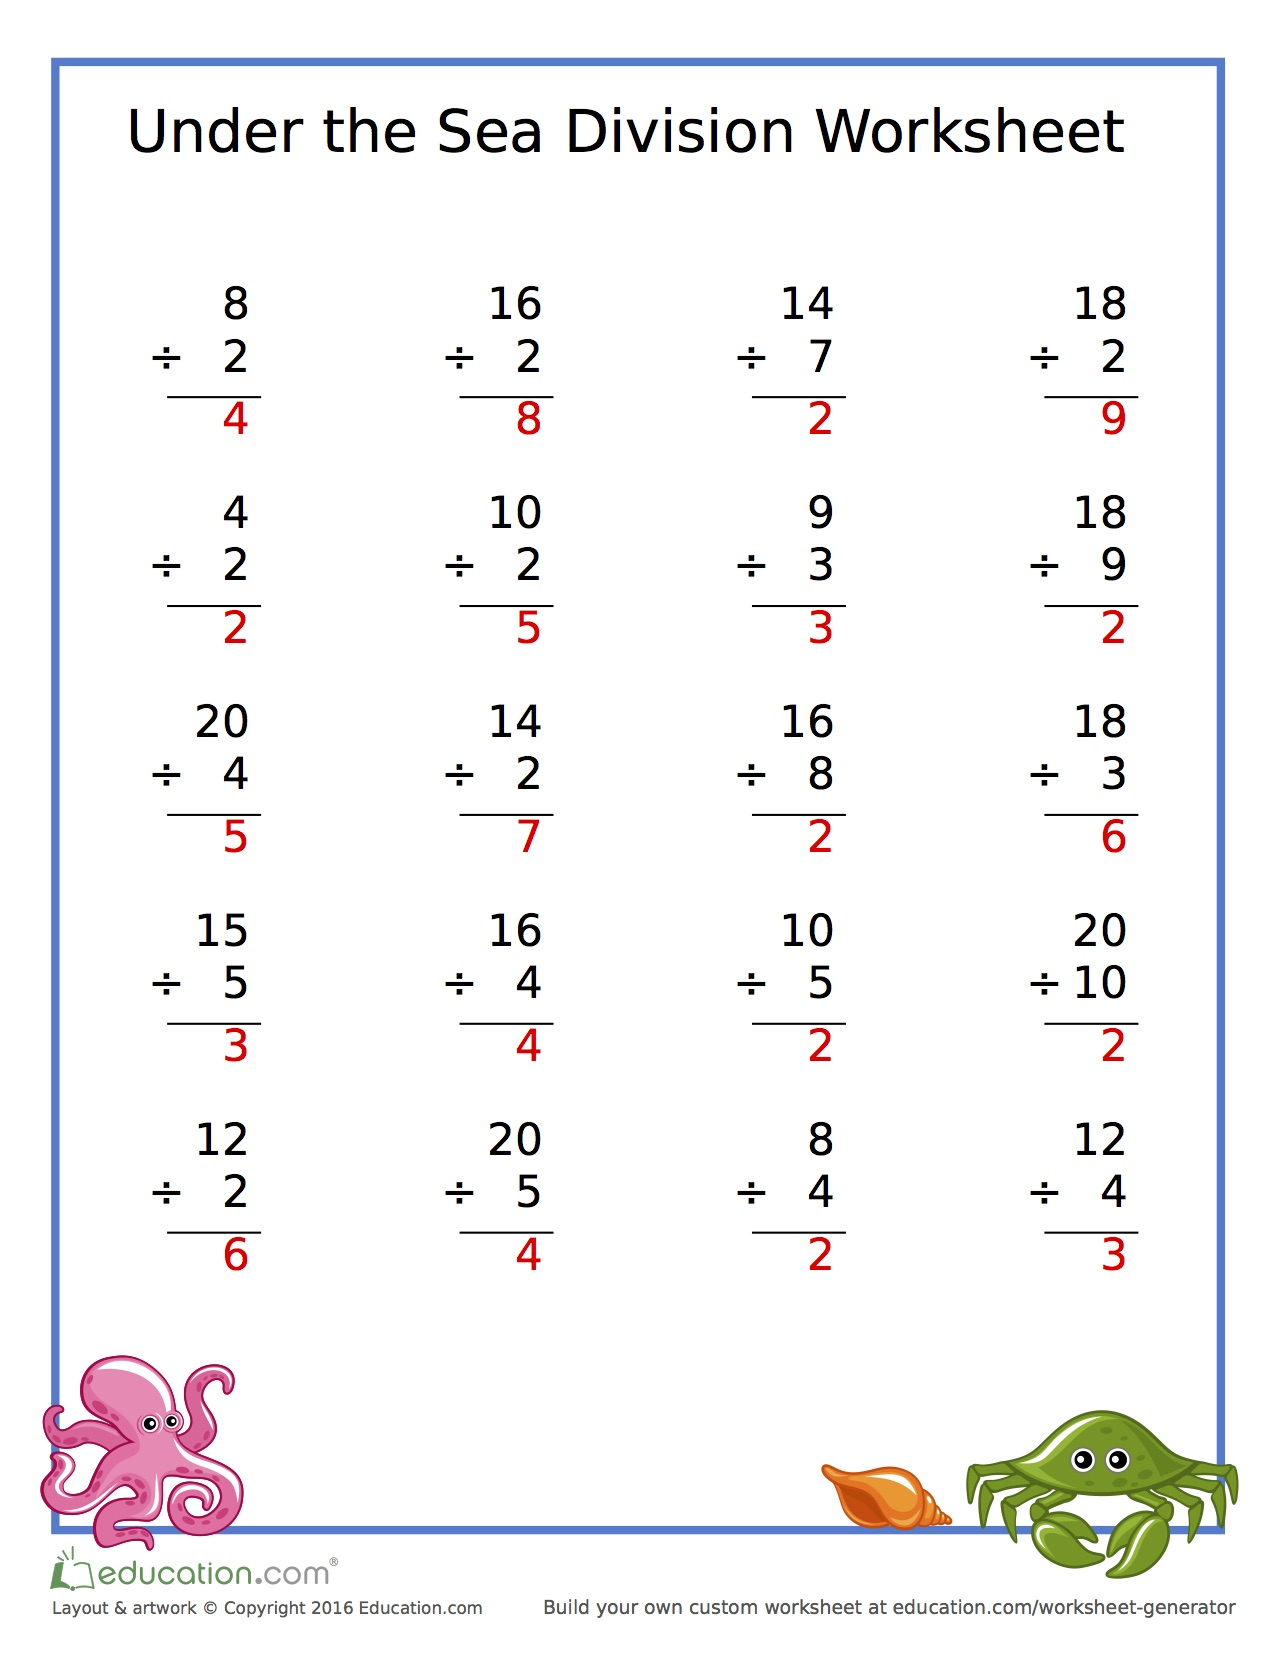 Division under the Sea Worksheets